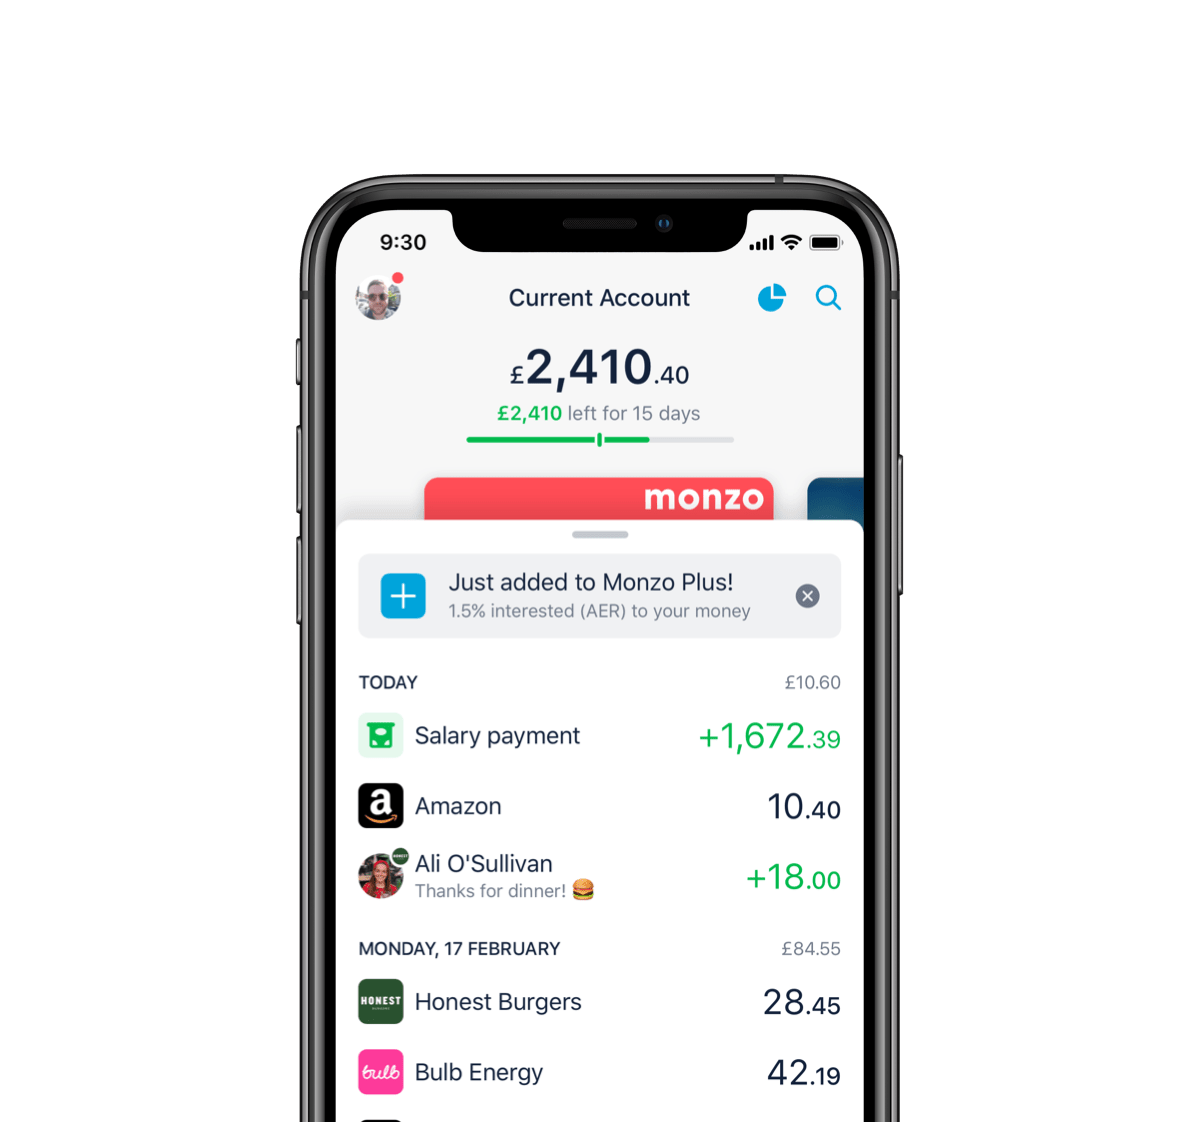 Monzo spending feed view in an iPhone